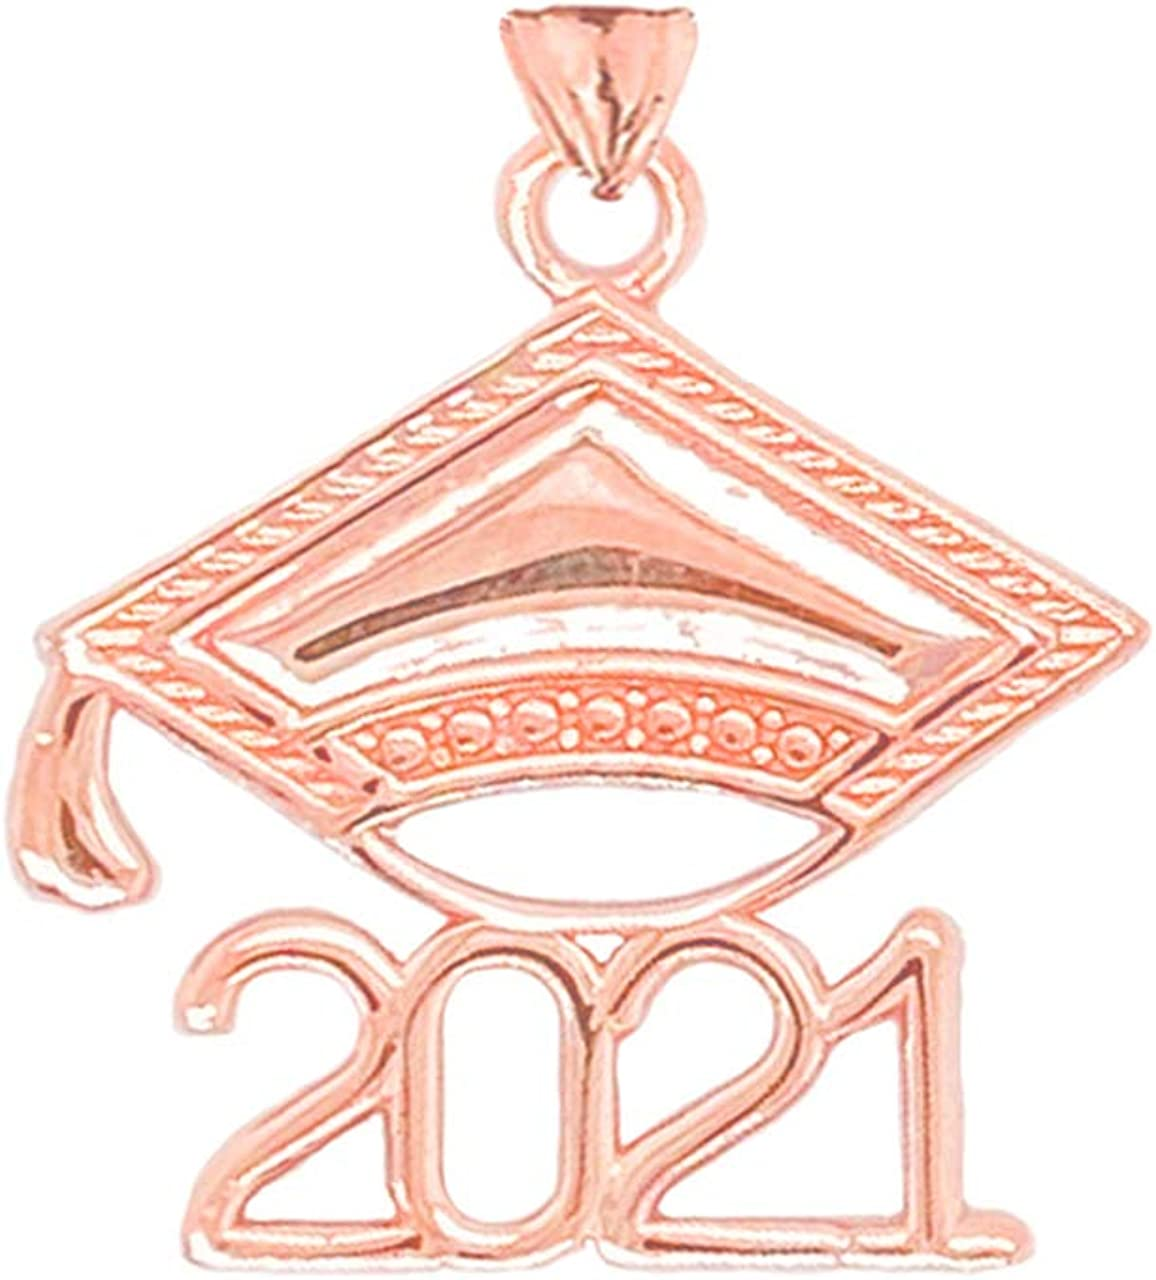 2021 Date pendant for Keychain Add a Class of 2019 Year charm 2020 or Bracelet personalized date customized Add on 2017 2018 Necklace